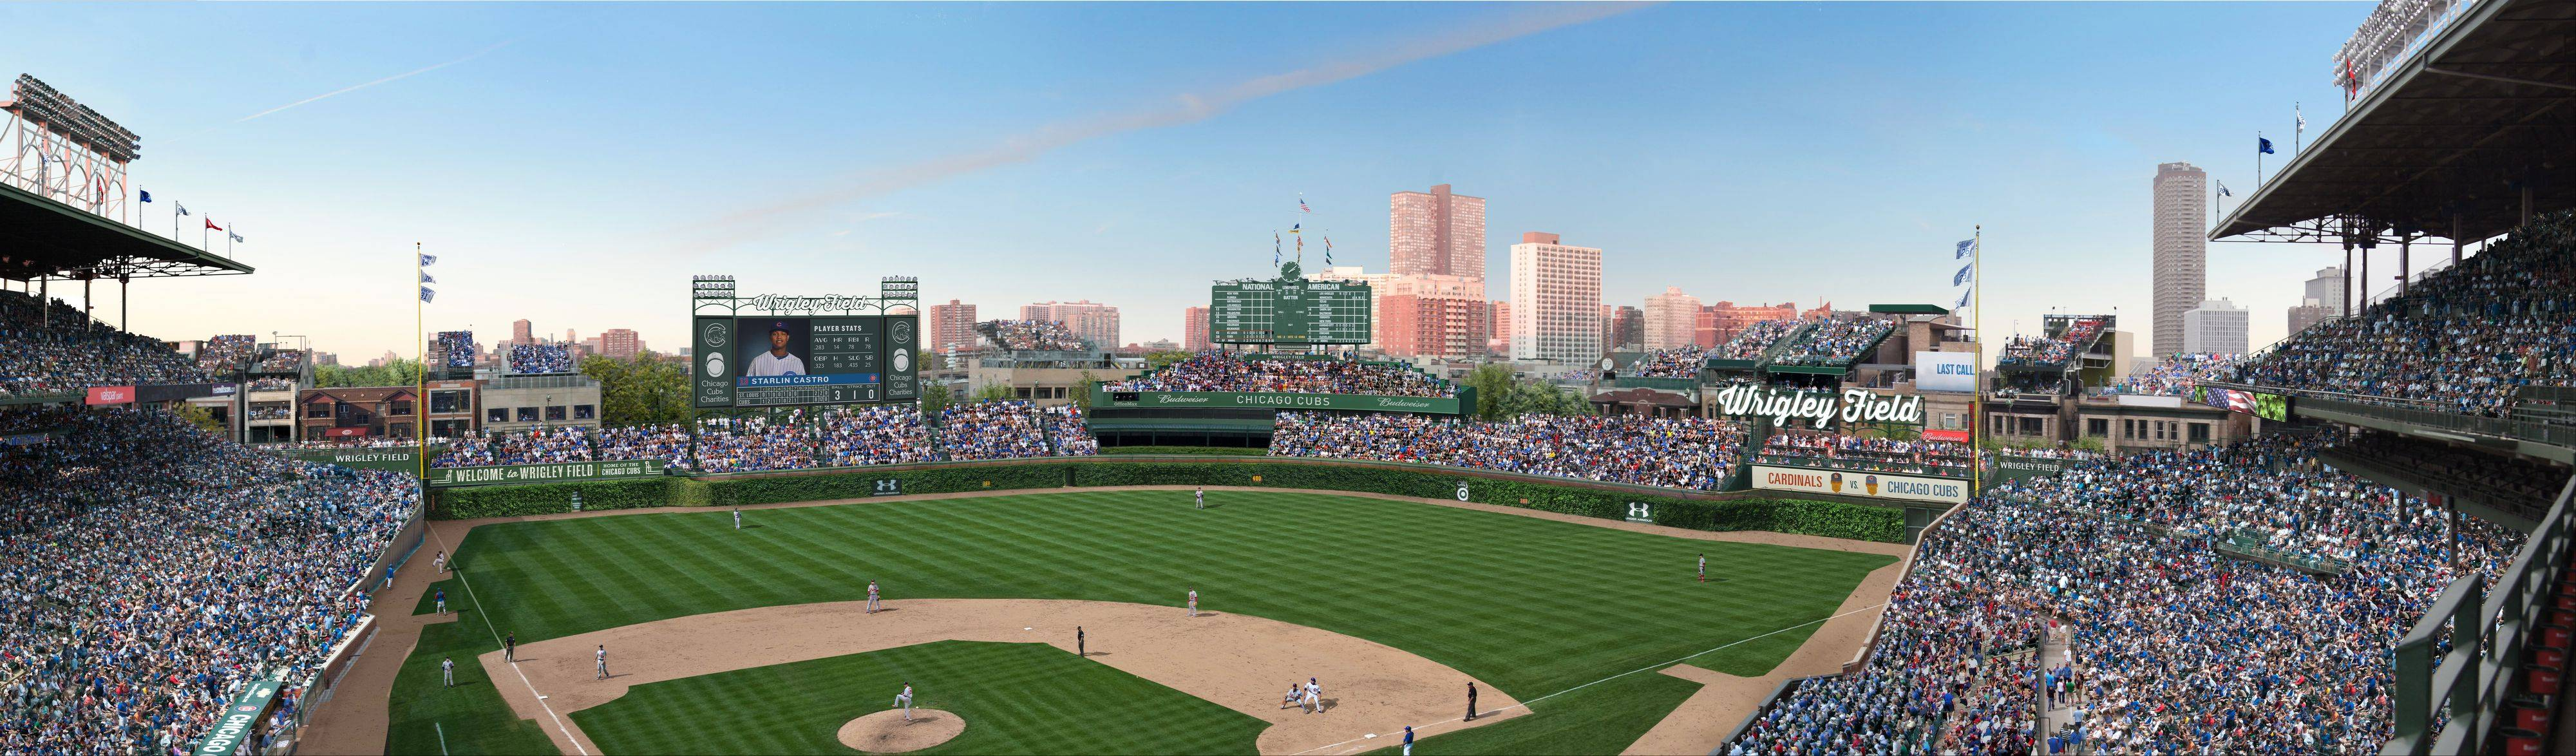 Part of the $500 million renovation plan for the 99-year-old stadium is to erect a 6,000-square-foot video screen over left field.